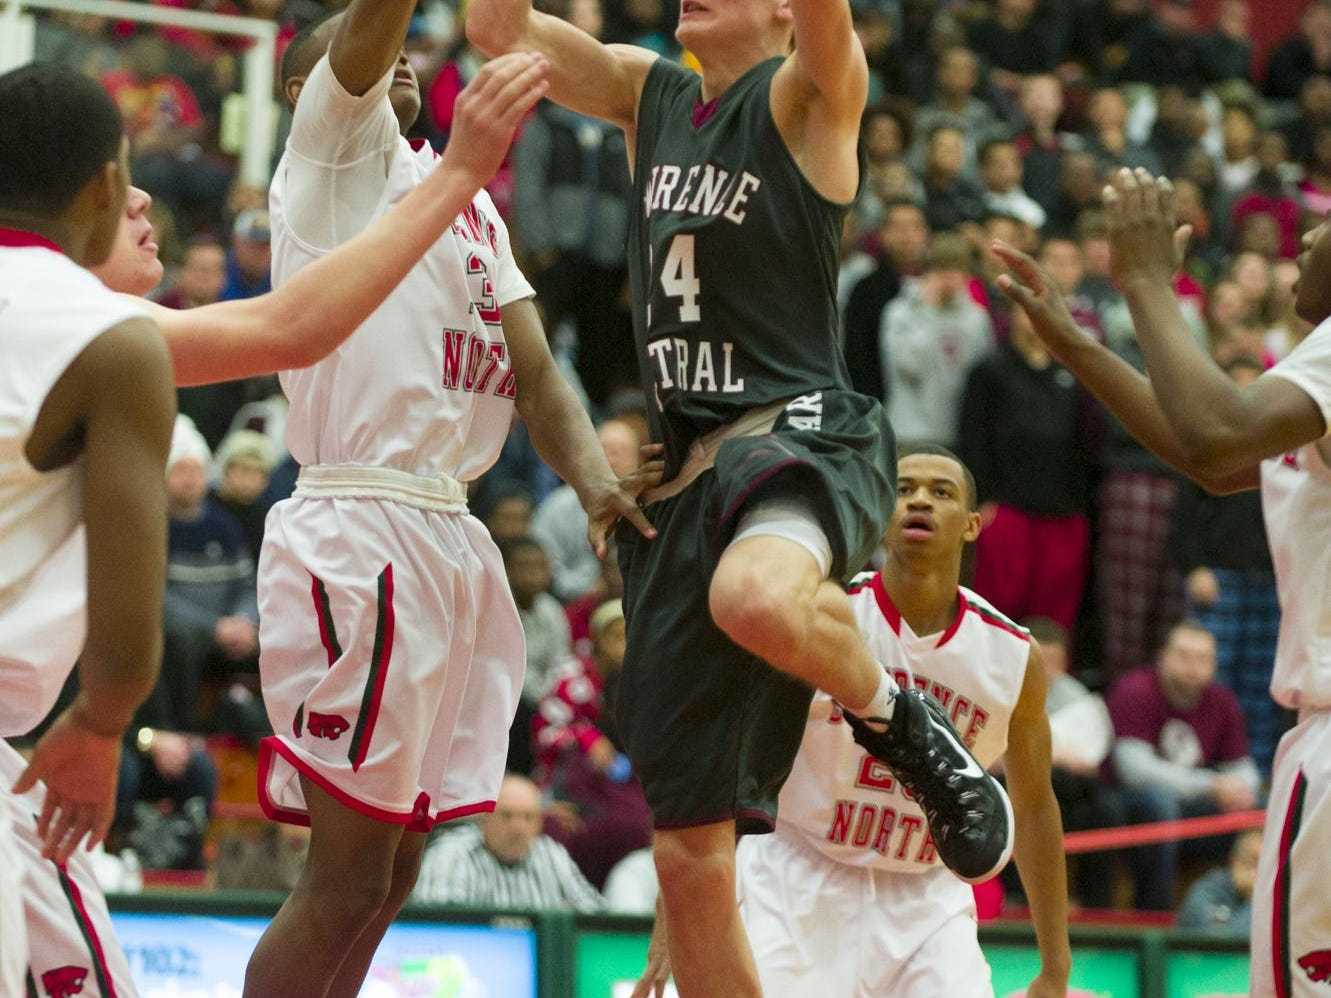 Lawrence Central's Kyle Guy is a potent outside shooter.